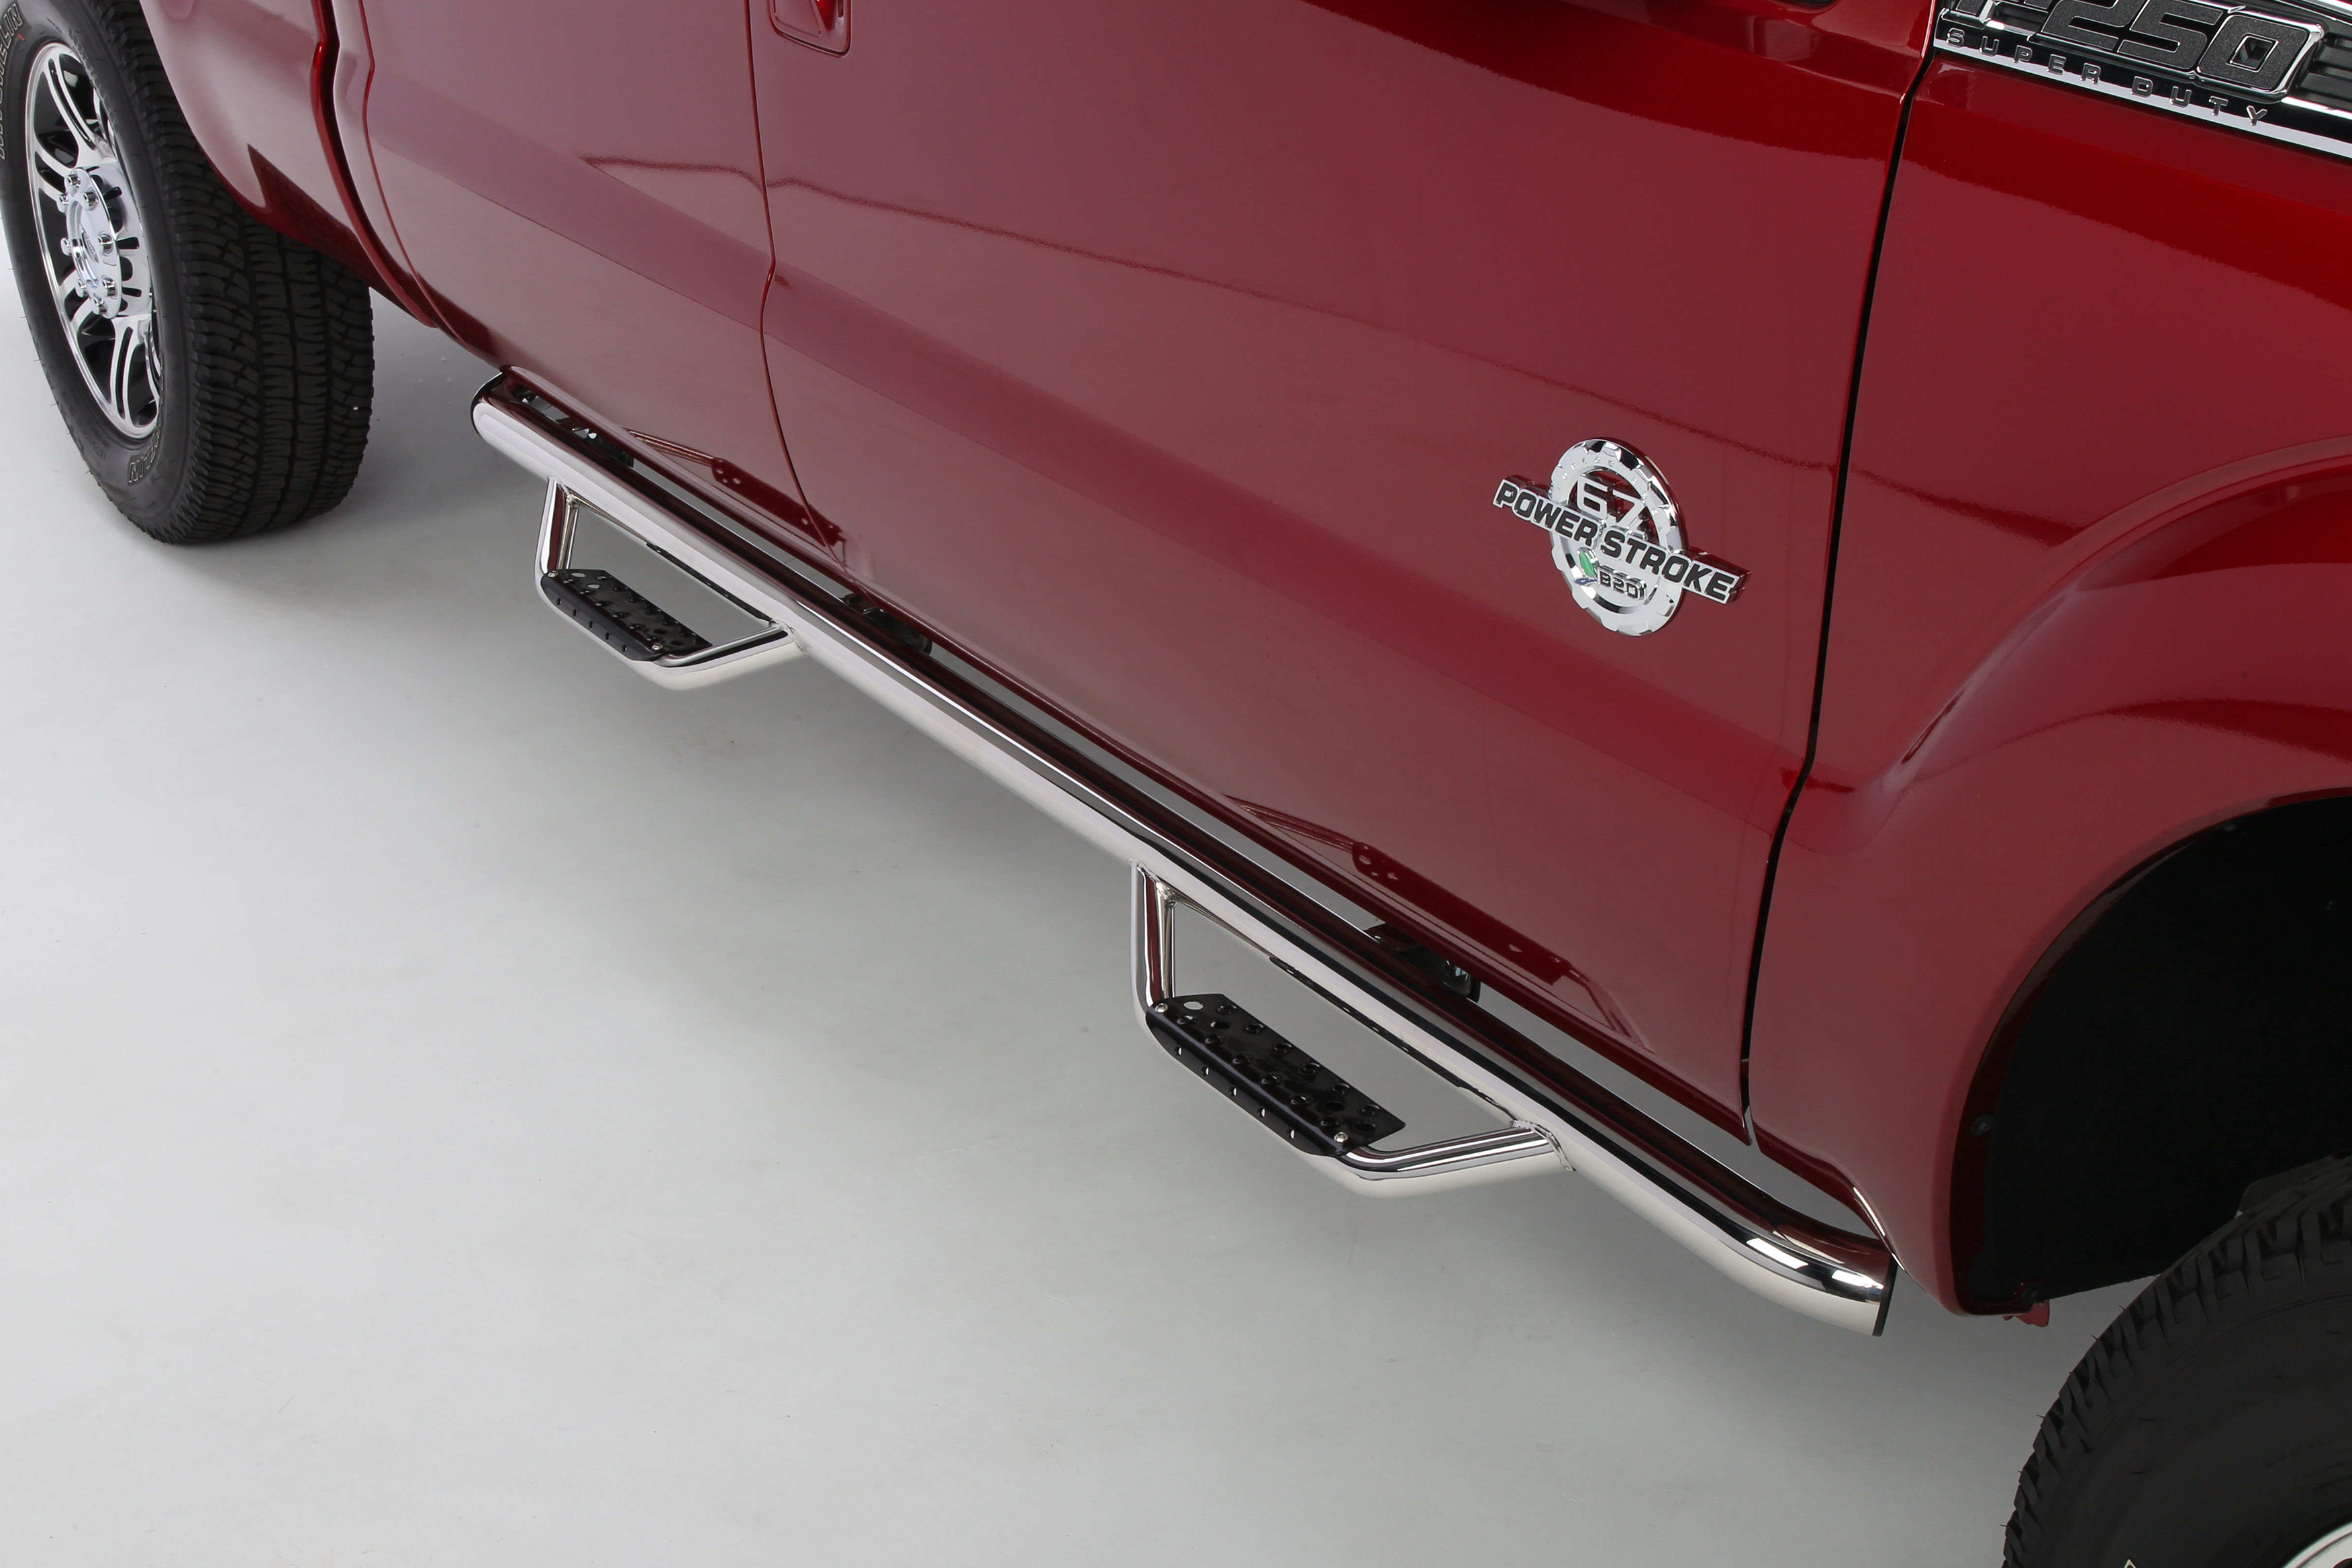 Tacoma Double Cab Sliders/Bars : Pure Tacoma, Parts and Accessories